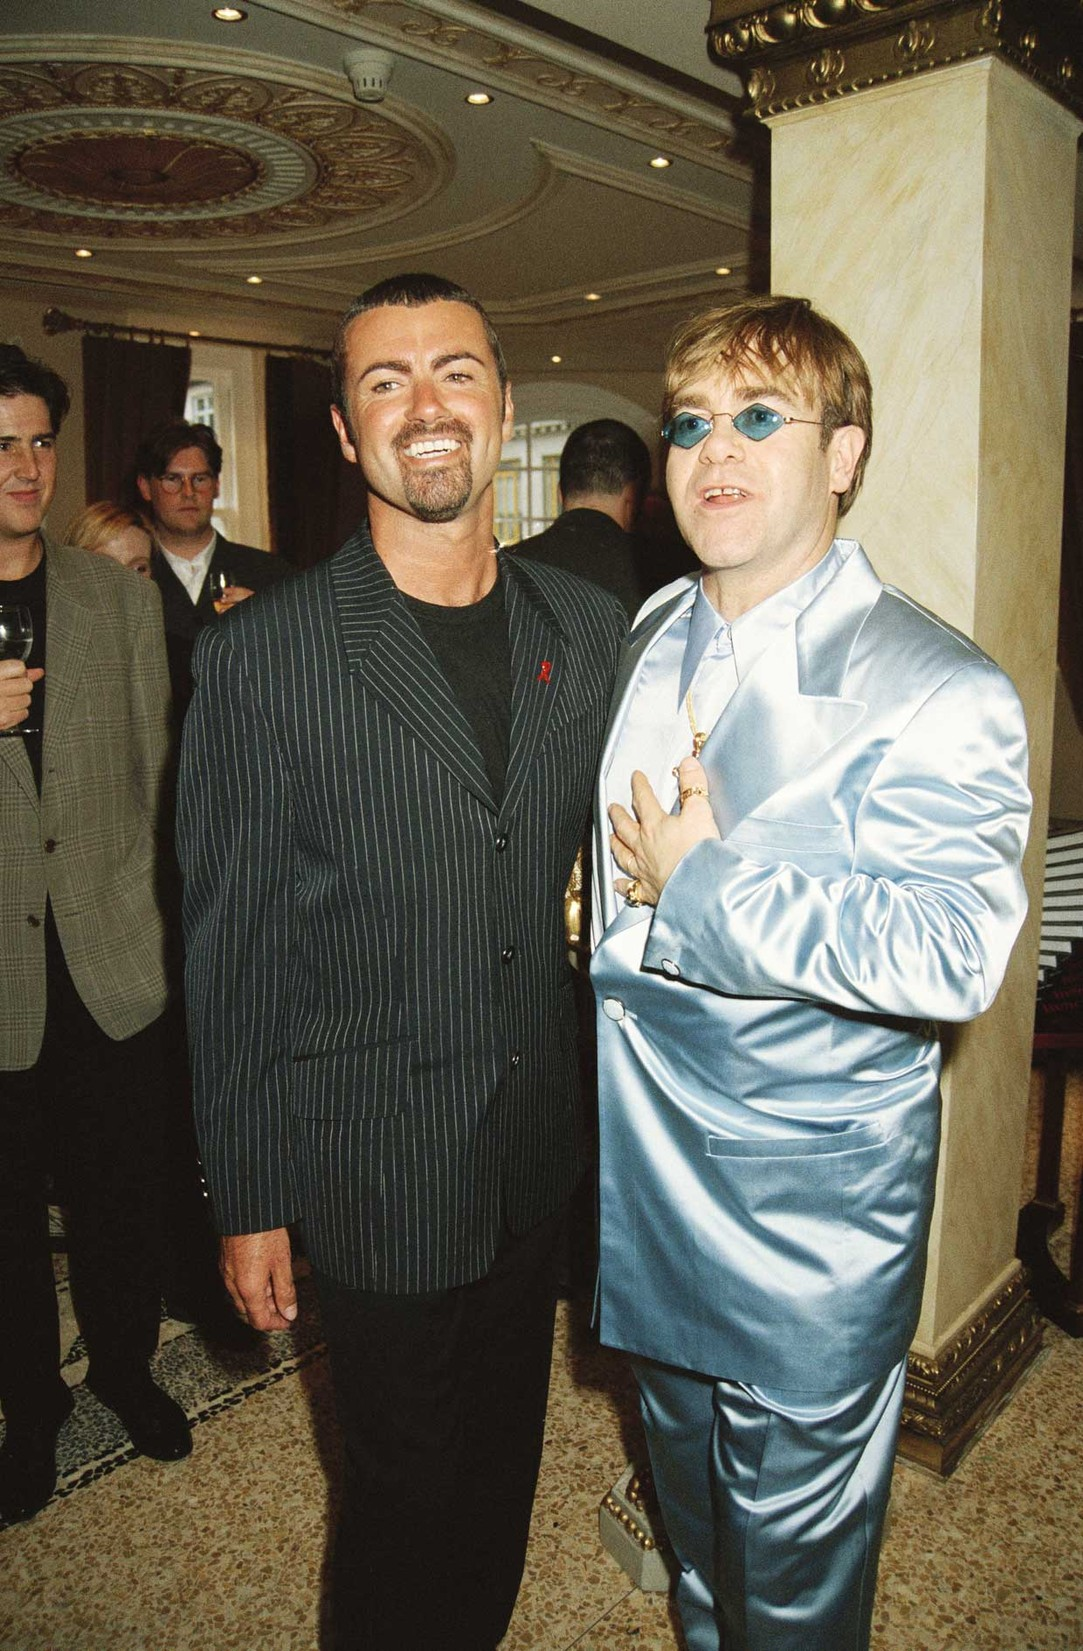 George Michael and Elton John at the Gianni Versace 'Men Without Ties' launch party in London on June 15, 1995.